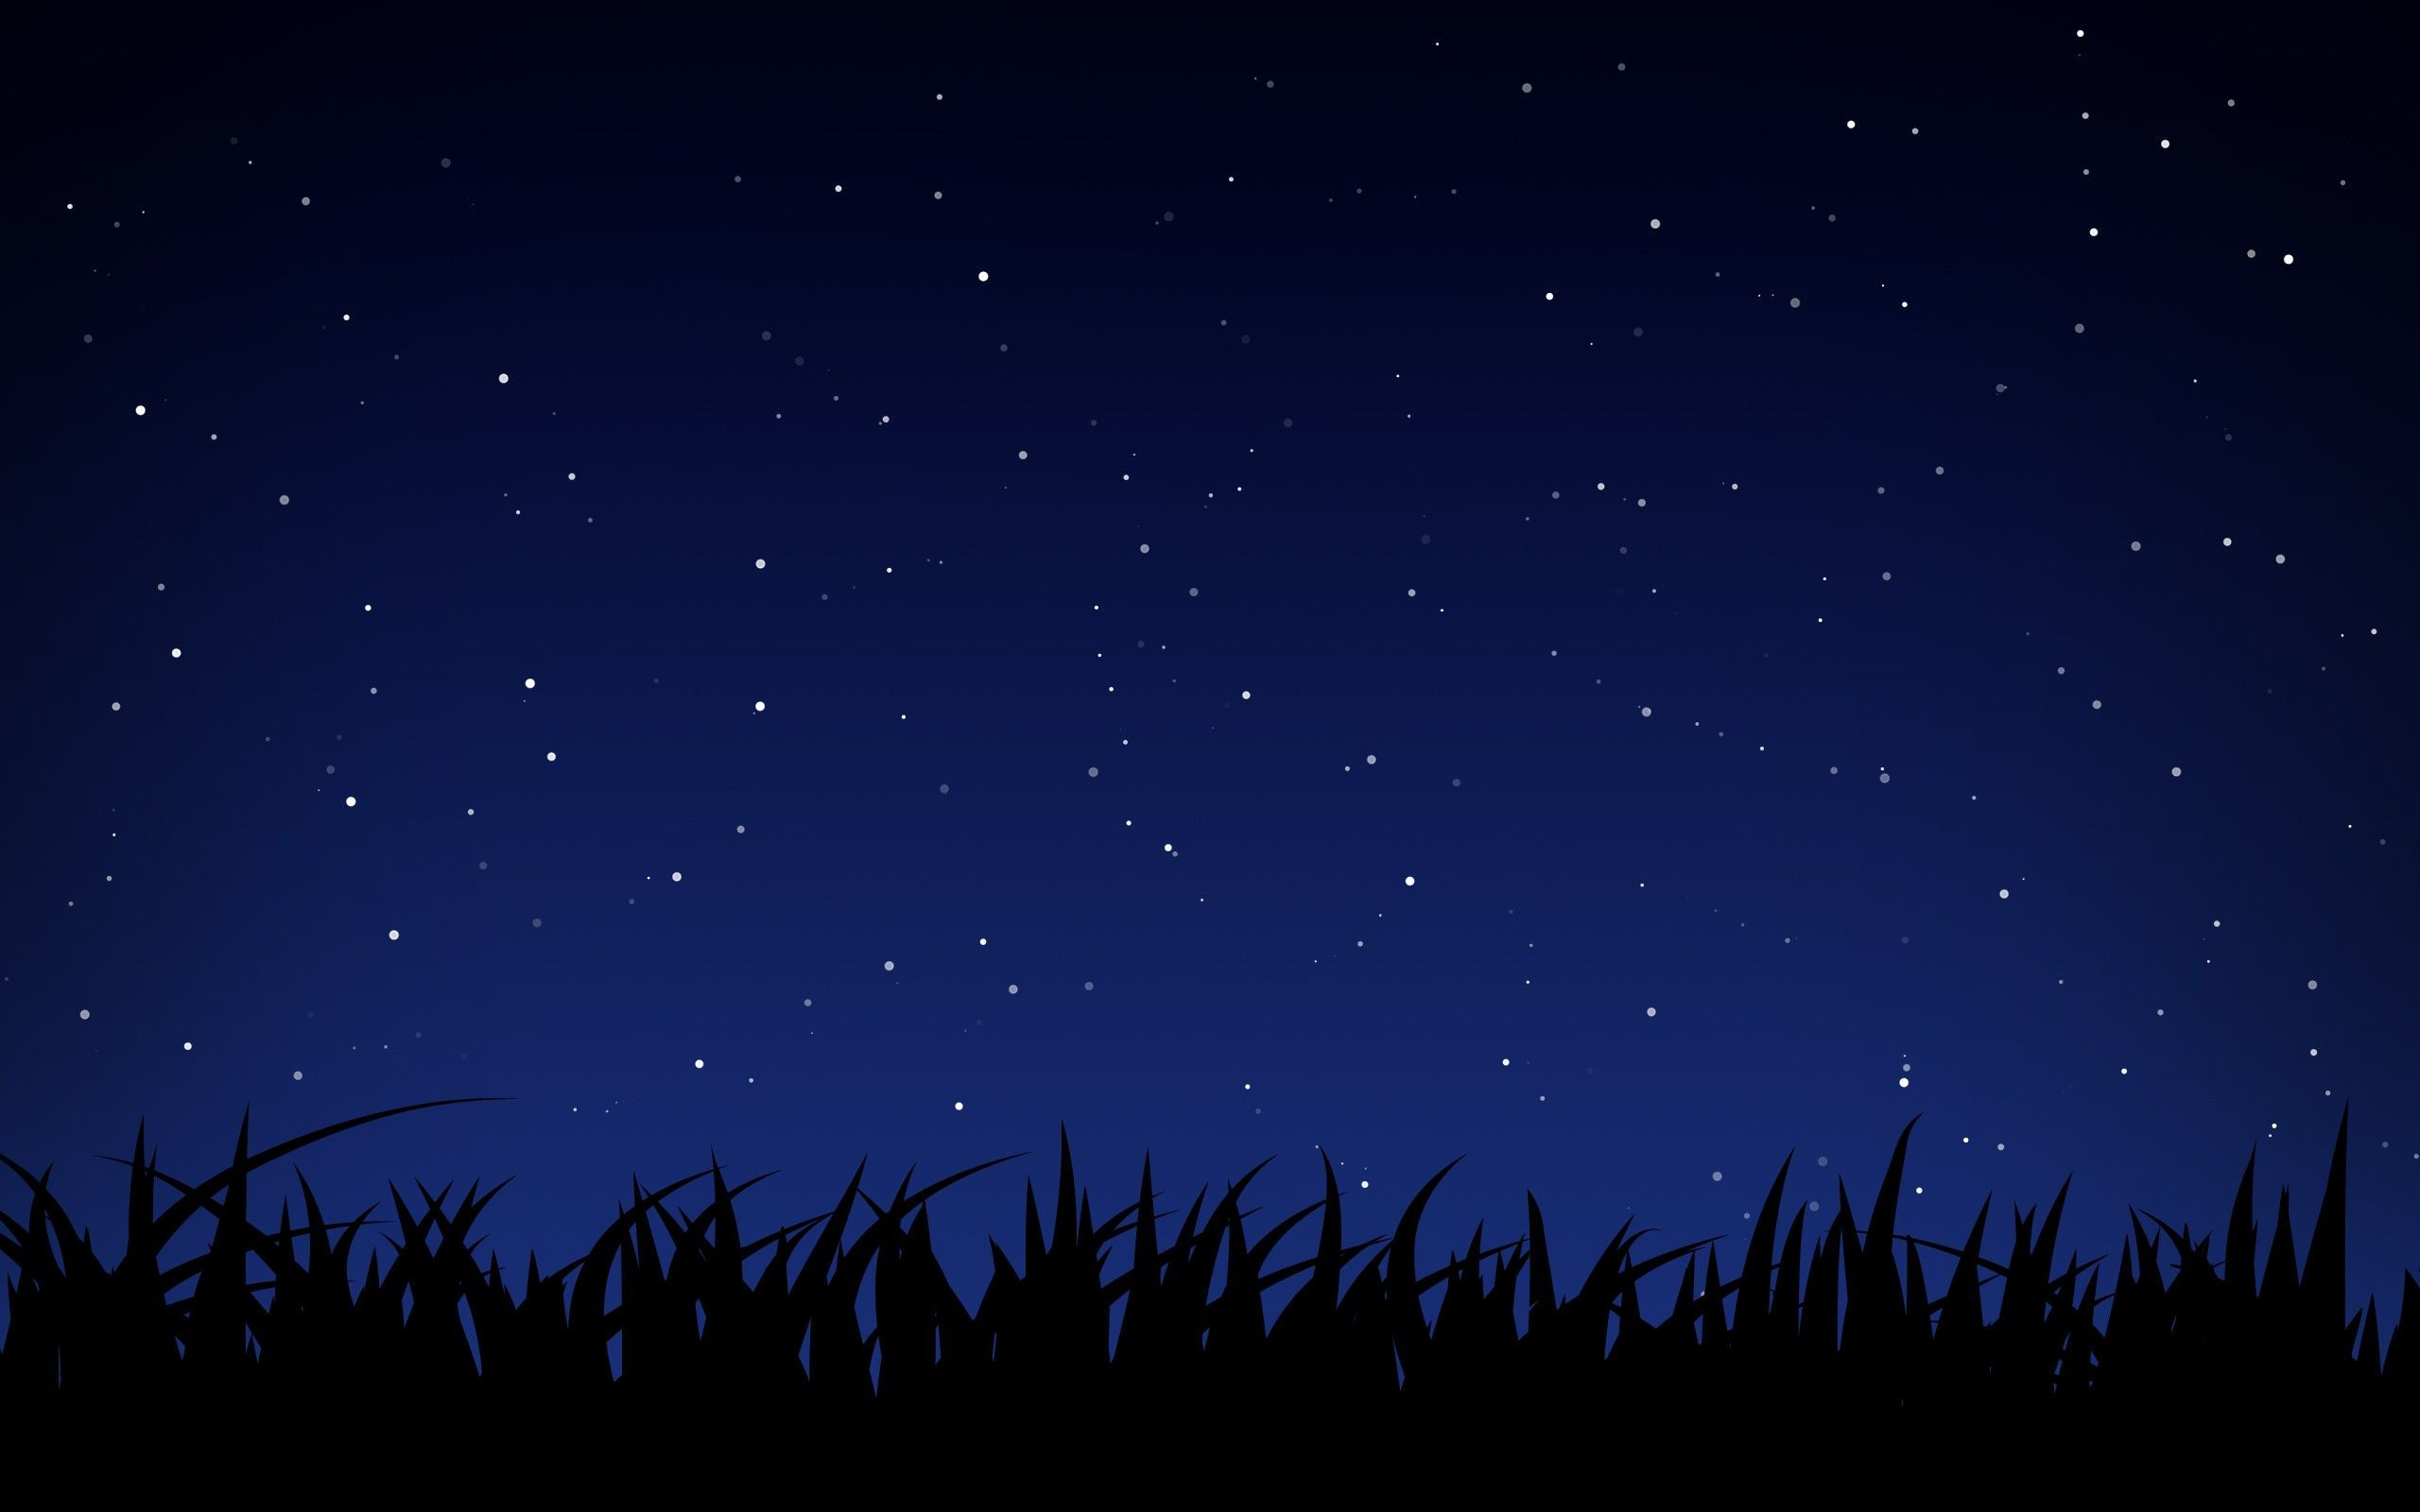 Anime Starry Night Sky Wallpapers Phone For Free Wallpaper.